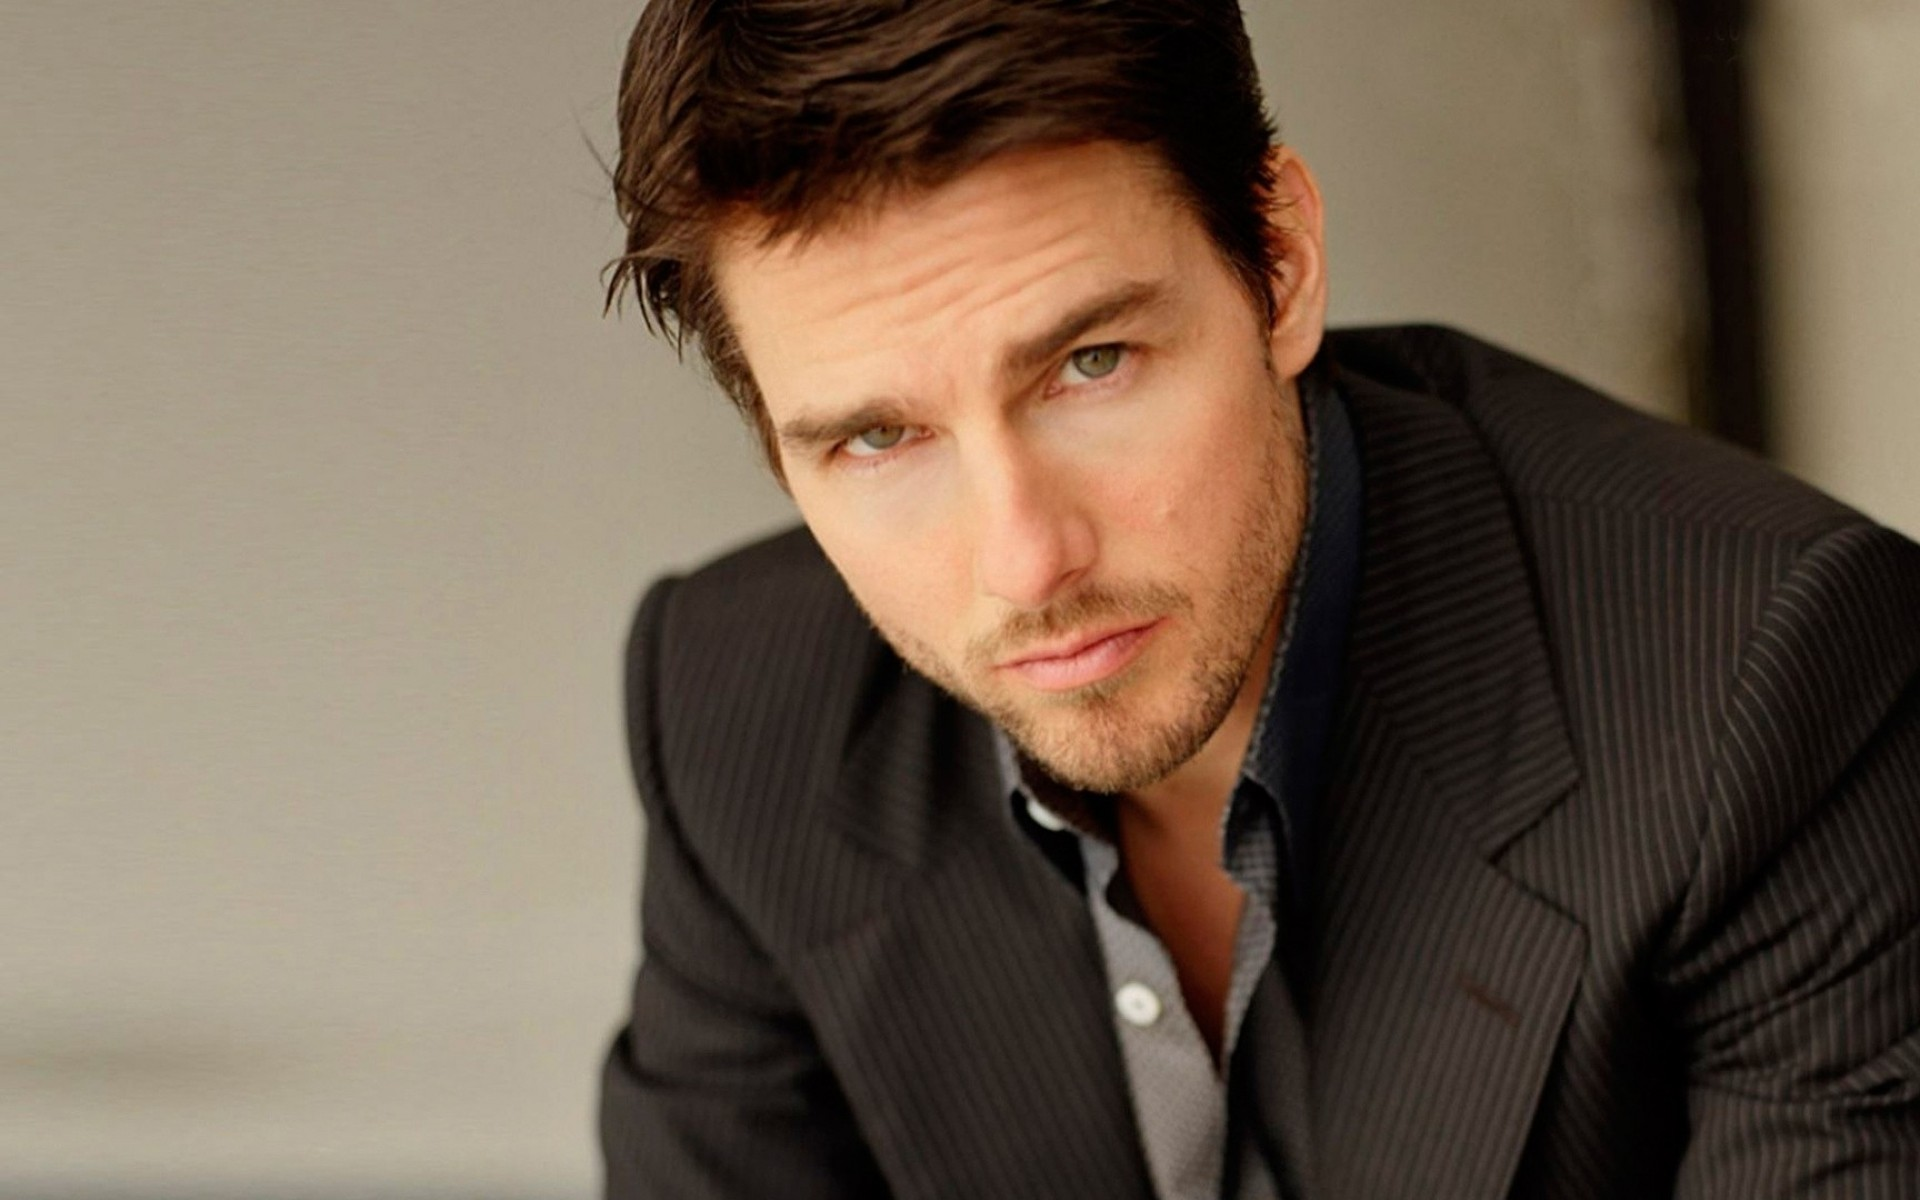 Tom Cruise Wallpapers High Resolution and Quality DownloadTom Cruise 1920x1200